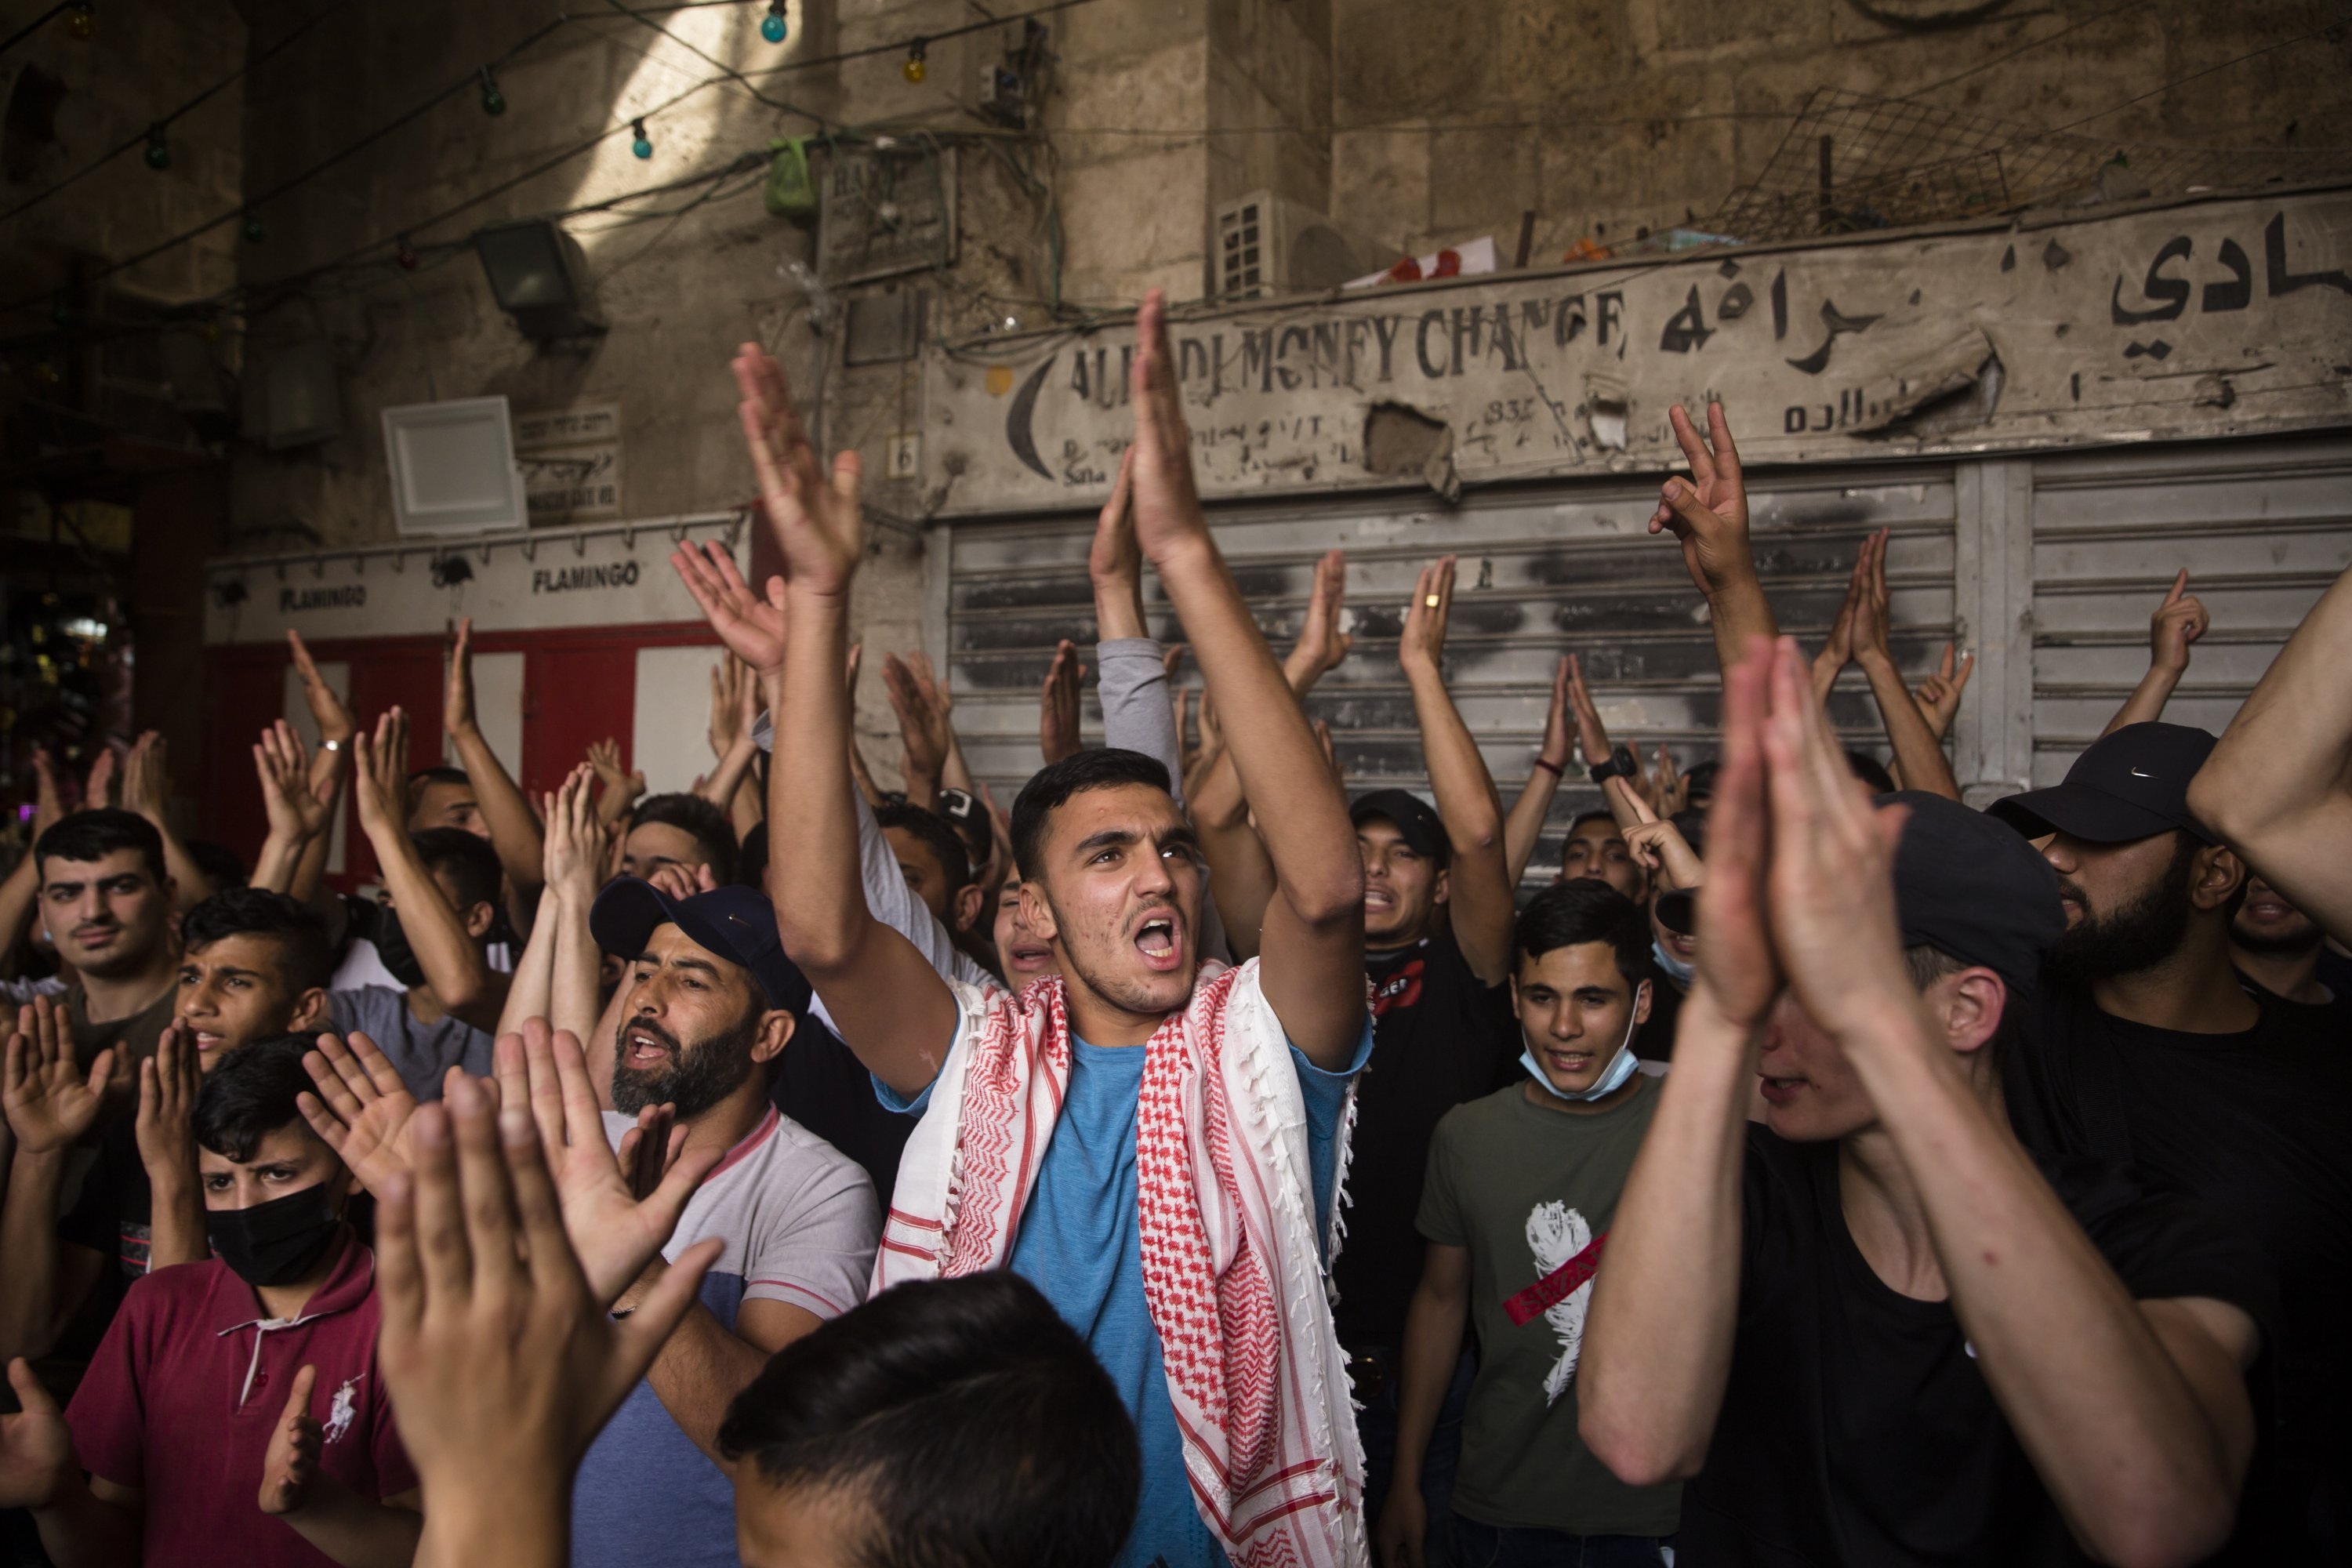 Palestinians protest at the Damascus Gate in the Old City, East Jerusalem, occupied Palestine, May 10, 2021. (Photo by Getty Images)